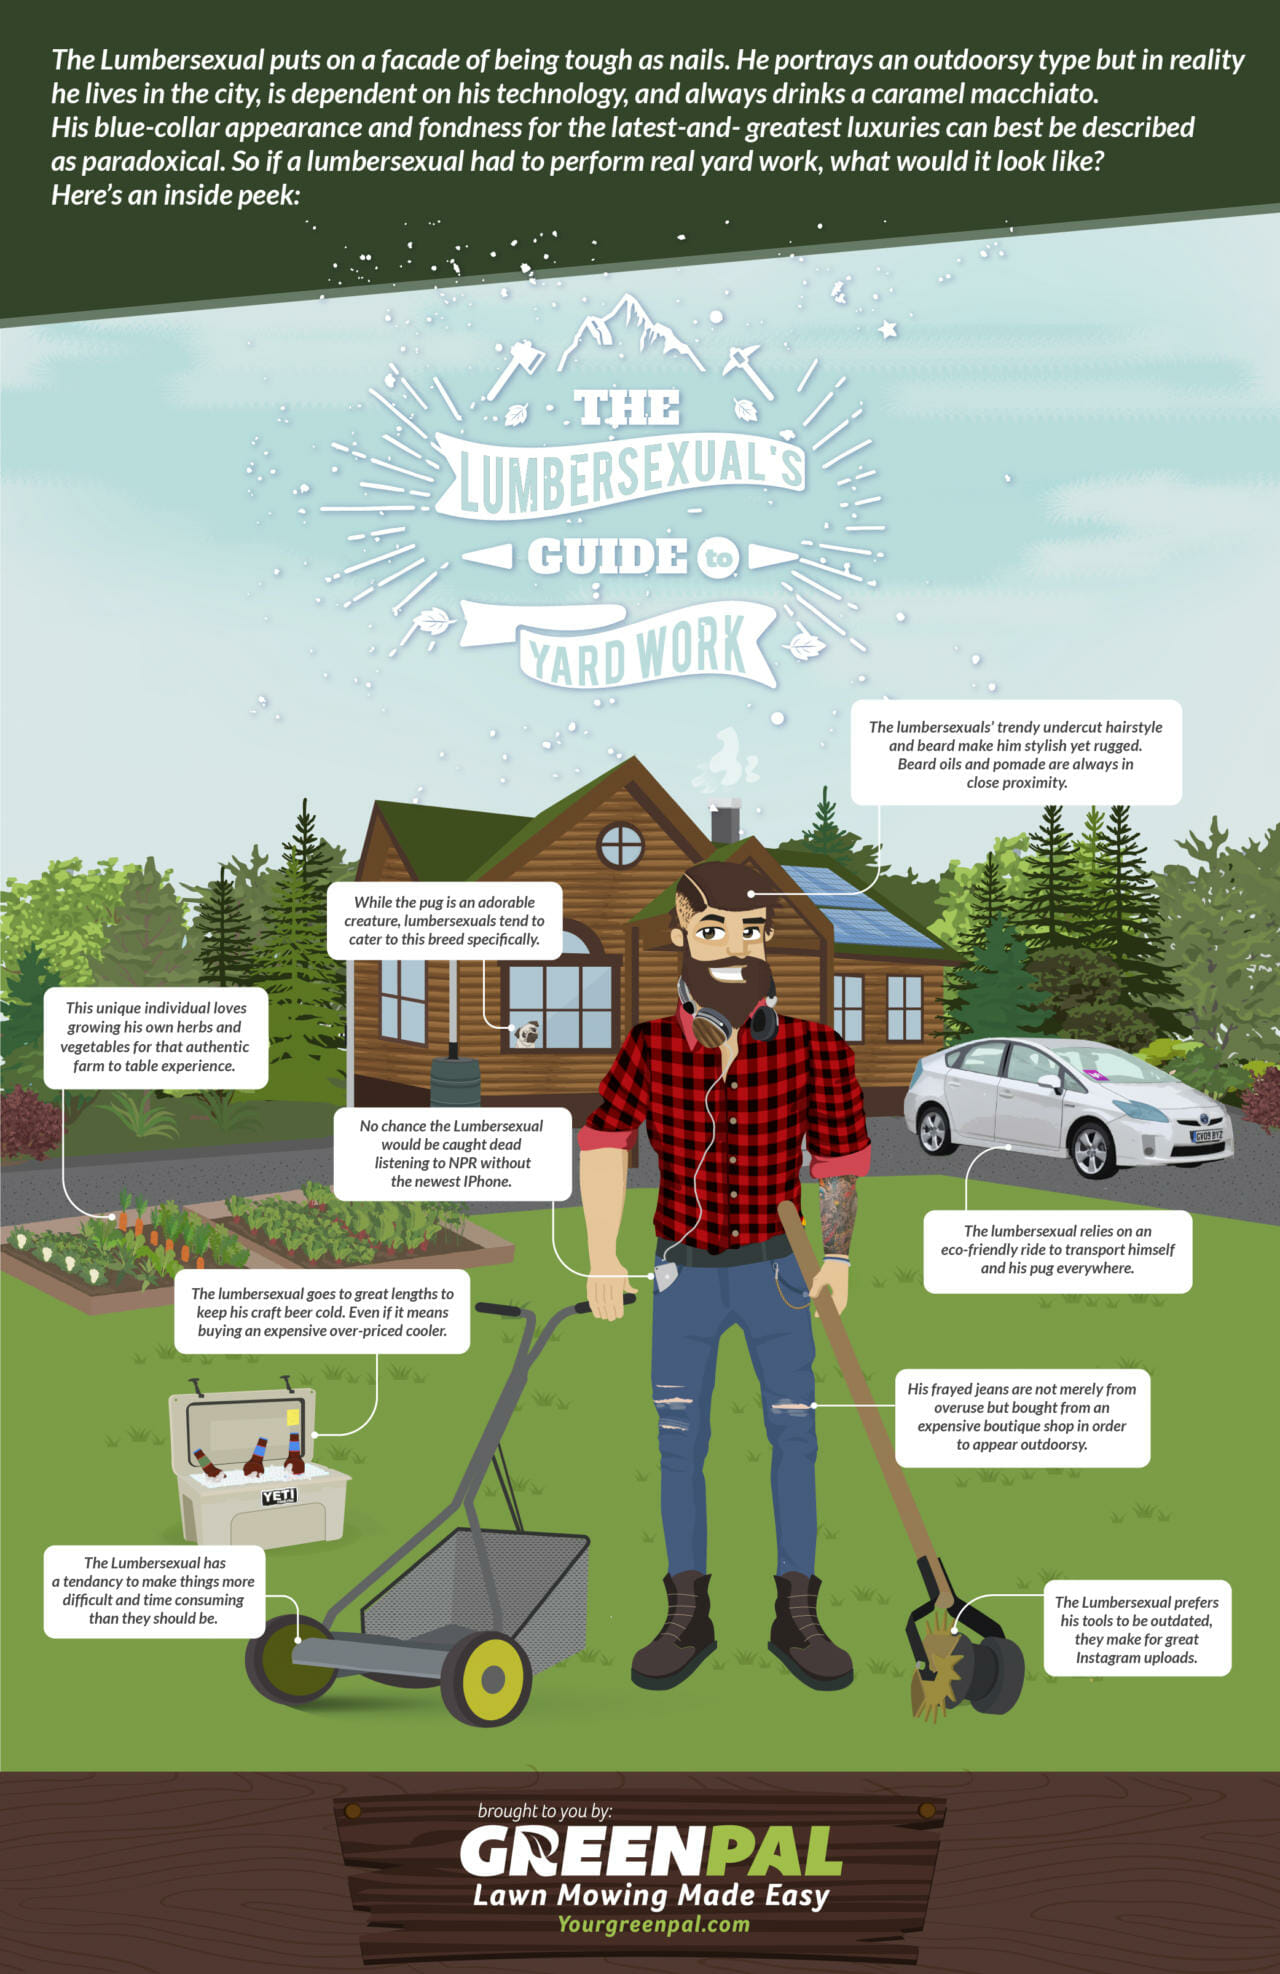 The Lumbersexual's Guide To Yard Work